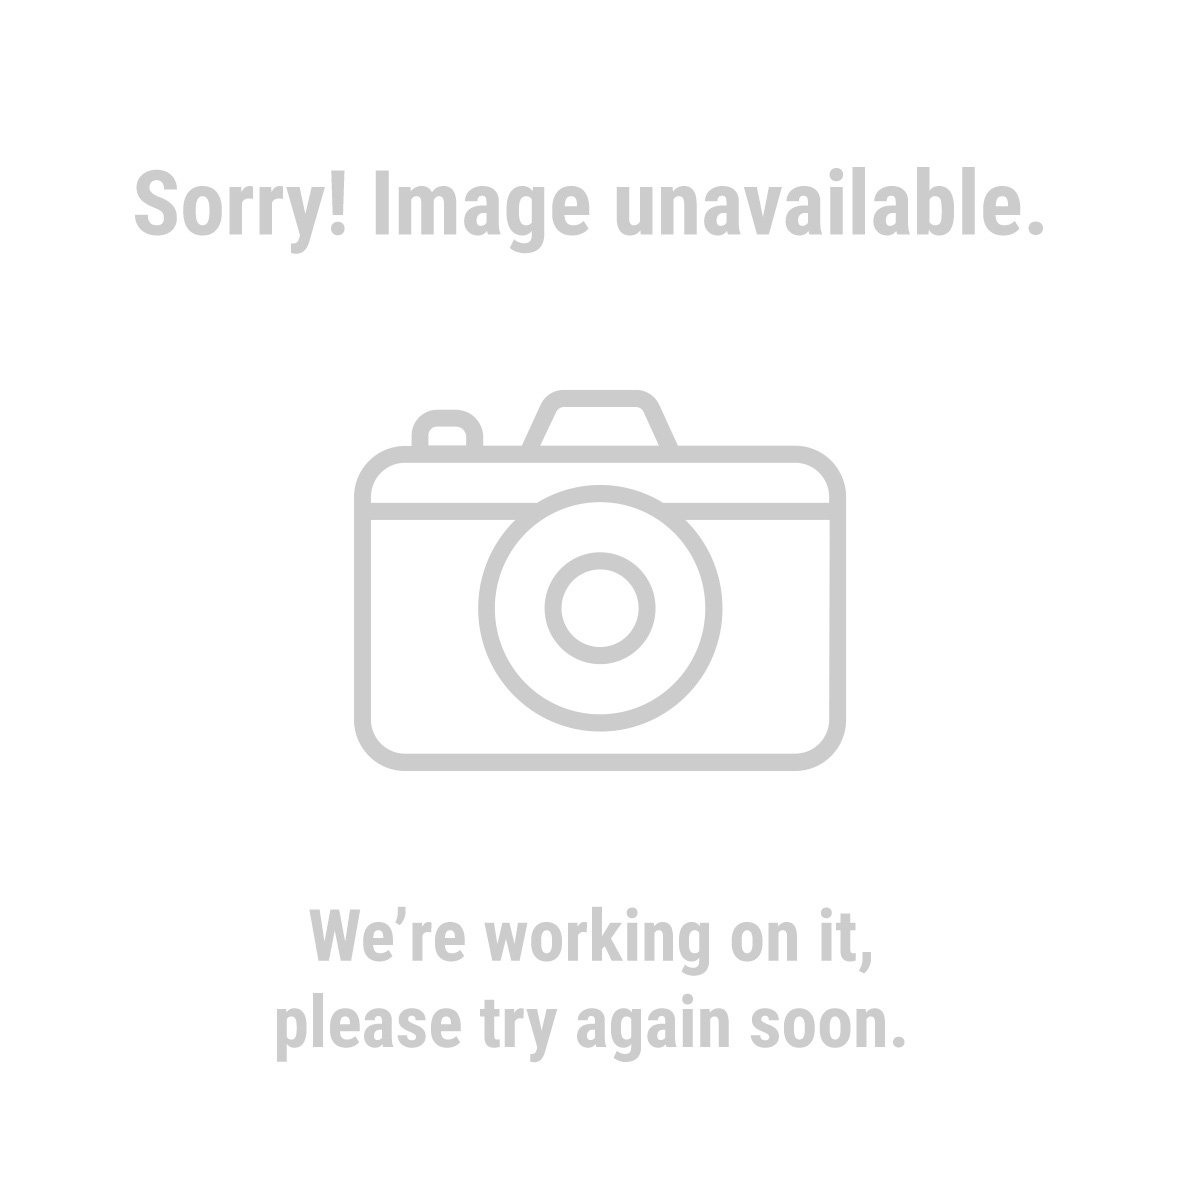 Western Safety 68492 Pack of 100 White Nitrile Gloves, Size Extra large